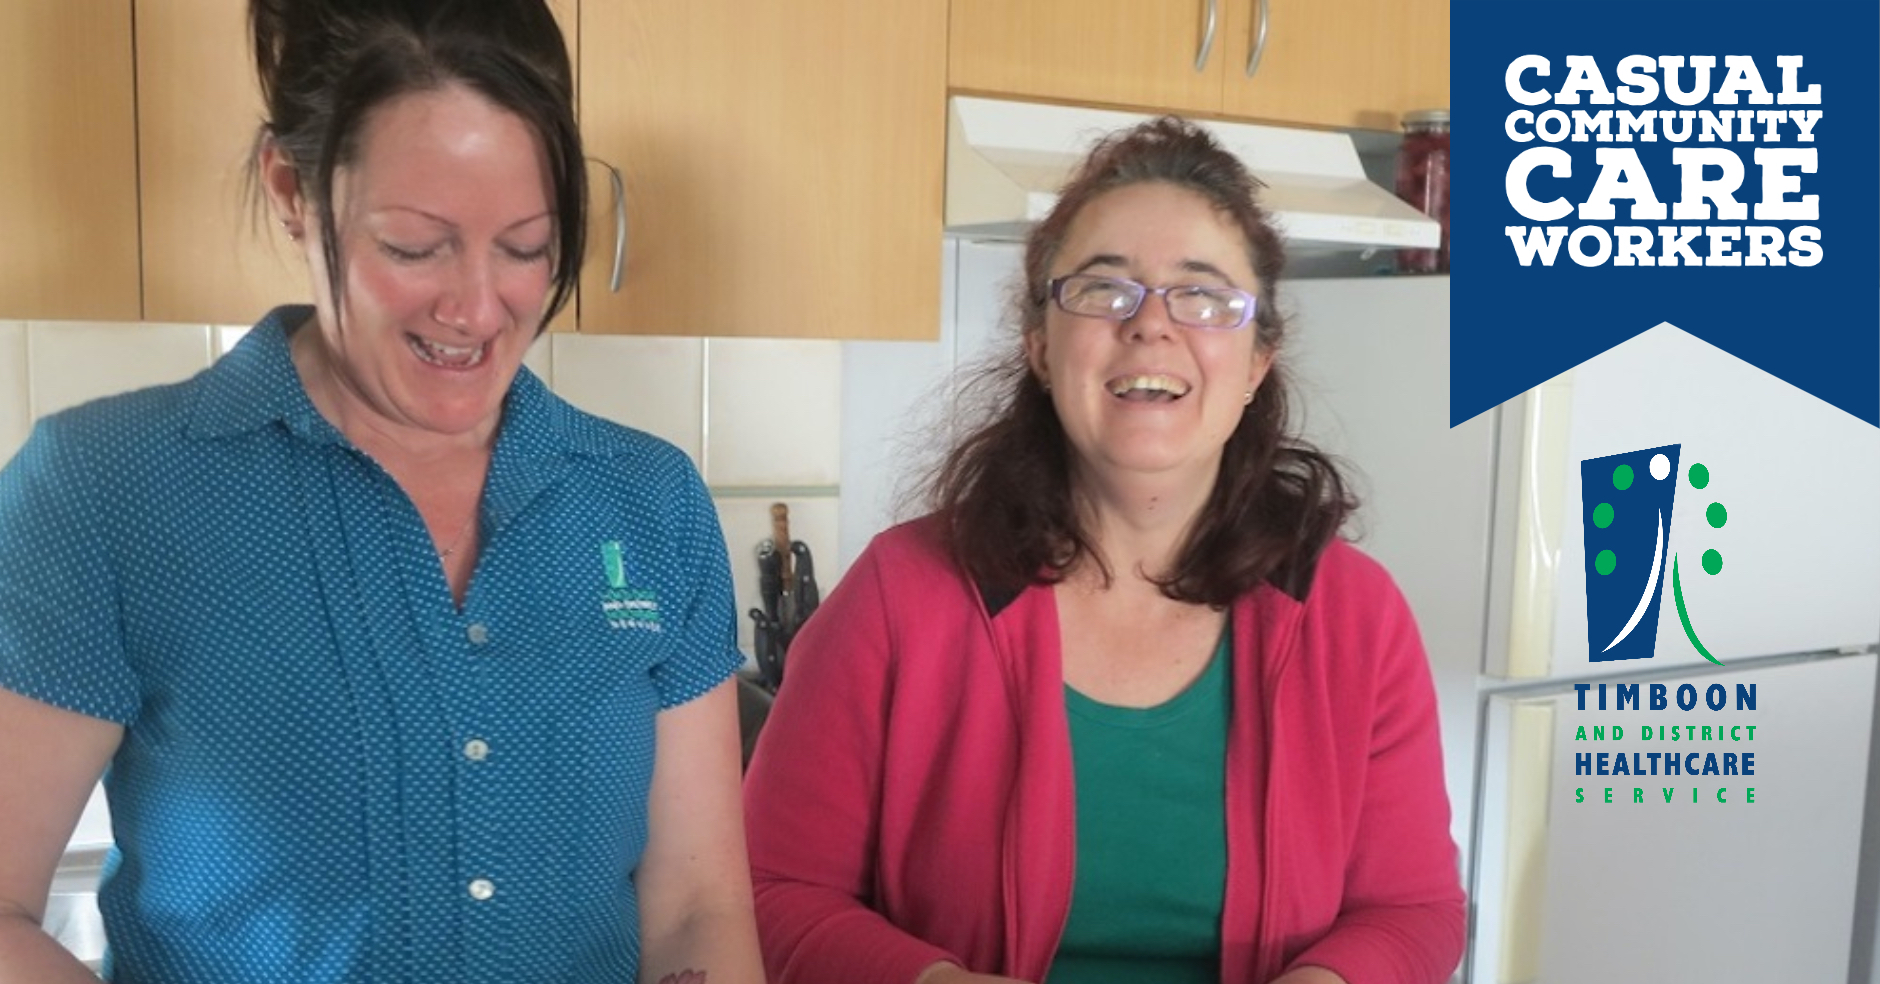 TDHS Casual Community Care Workers 2